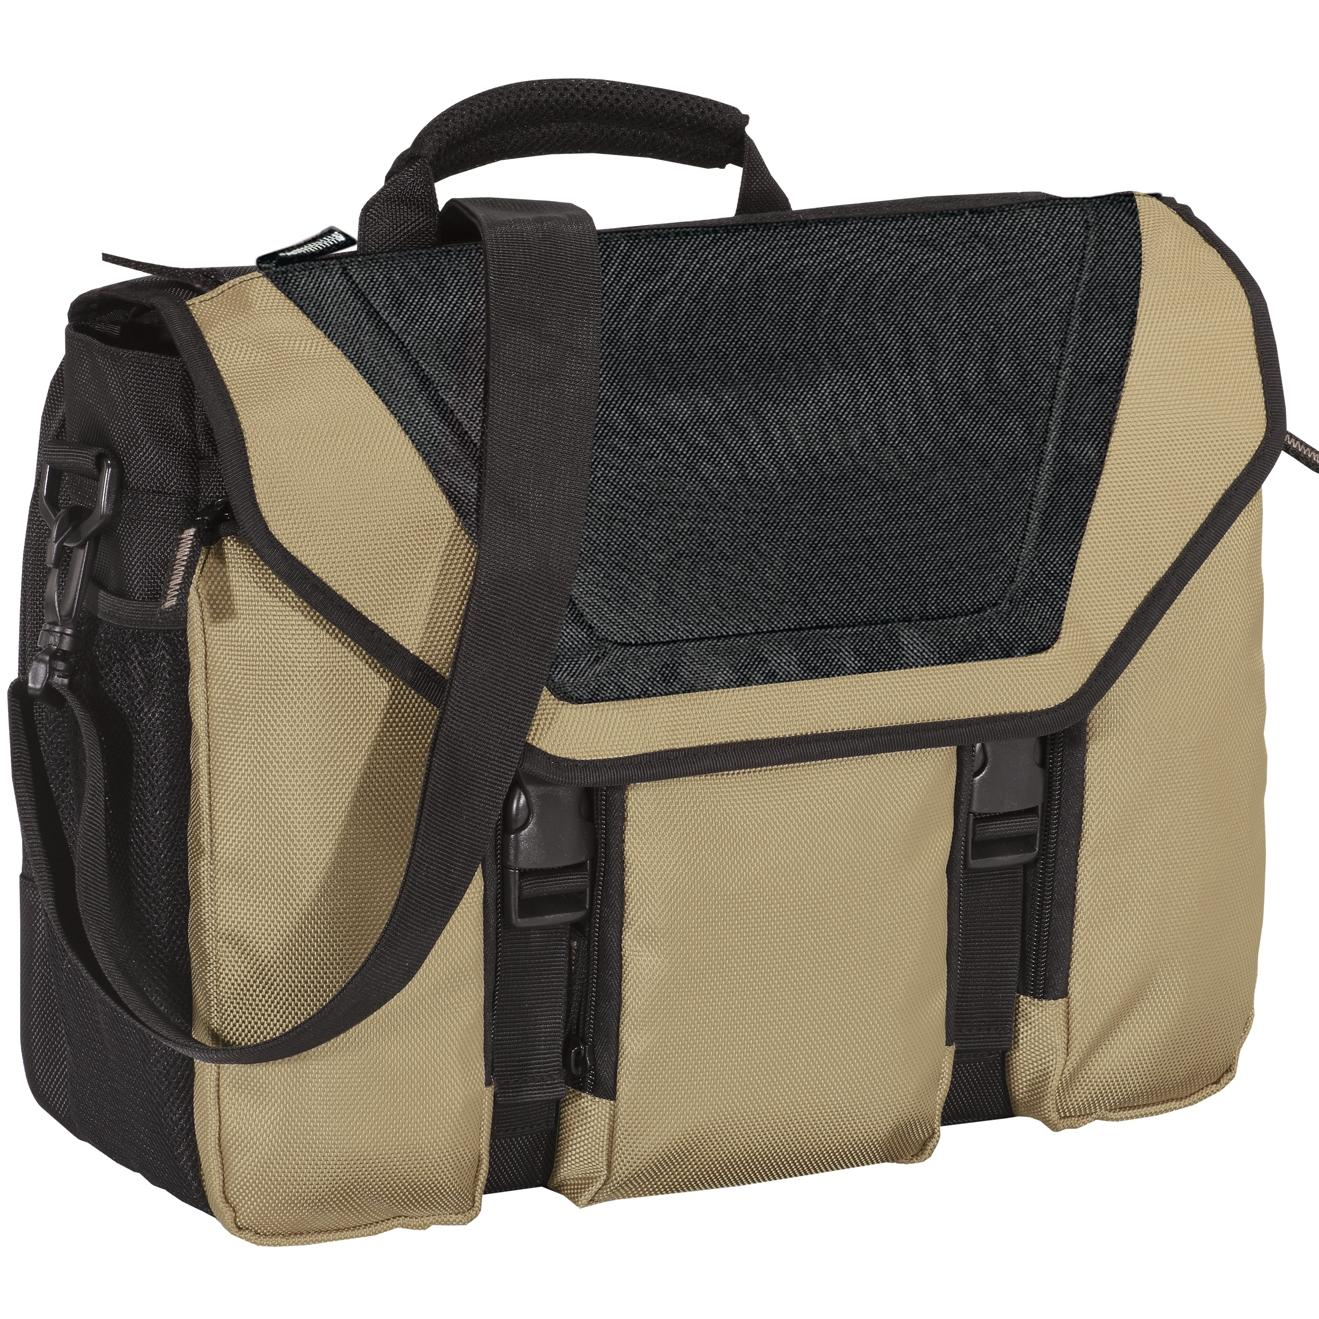 Port Authority Messenger Briefcase - Sand Dune/Black